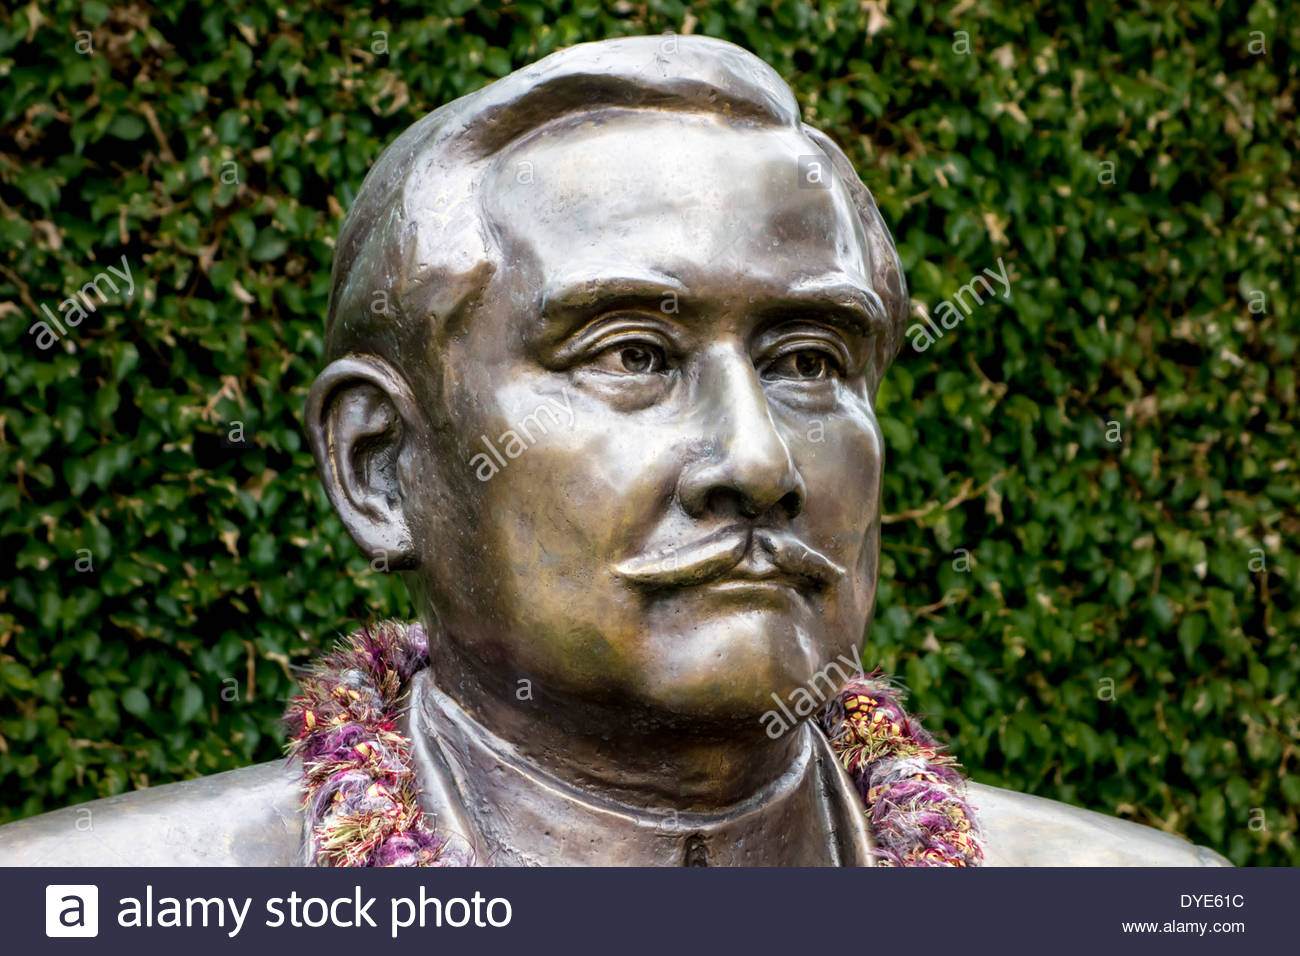 Statue of Dr Sun Yat-sen, the father of the Chinese Republic, at Lahaina on the island of Maui in the State of Hawaii USA - Stock Image